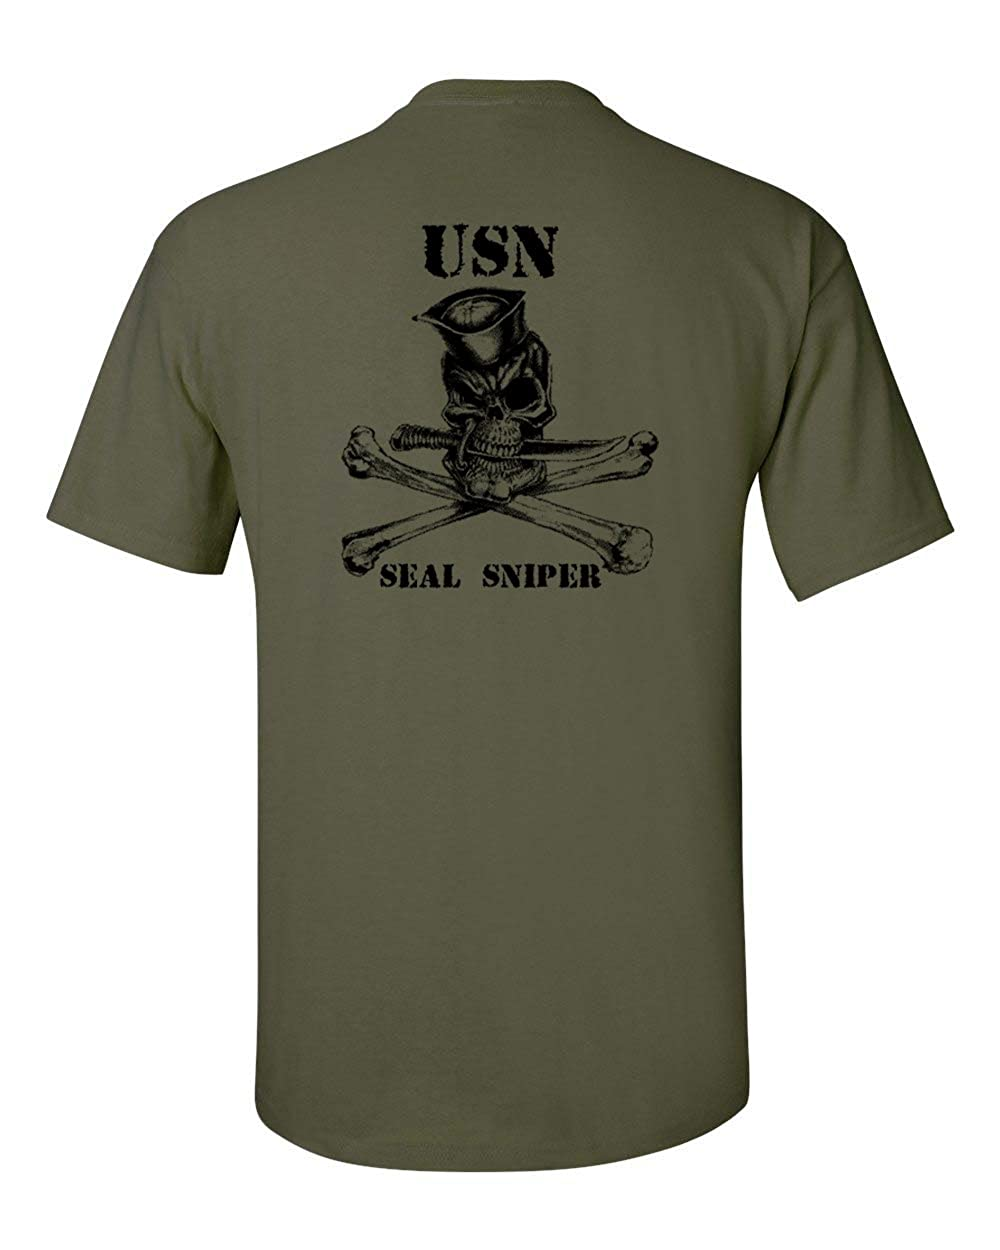 Navy Seal Sniper Front and Back Men's T-Shirt